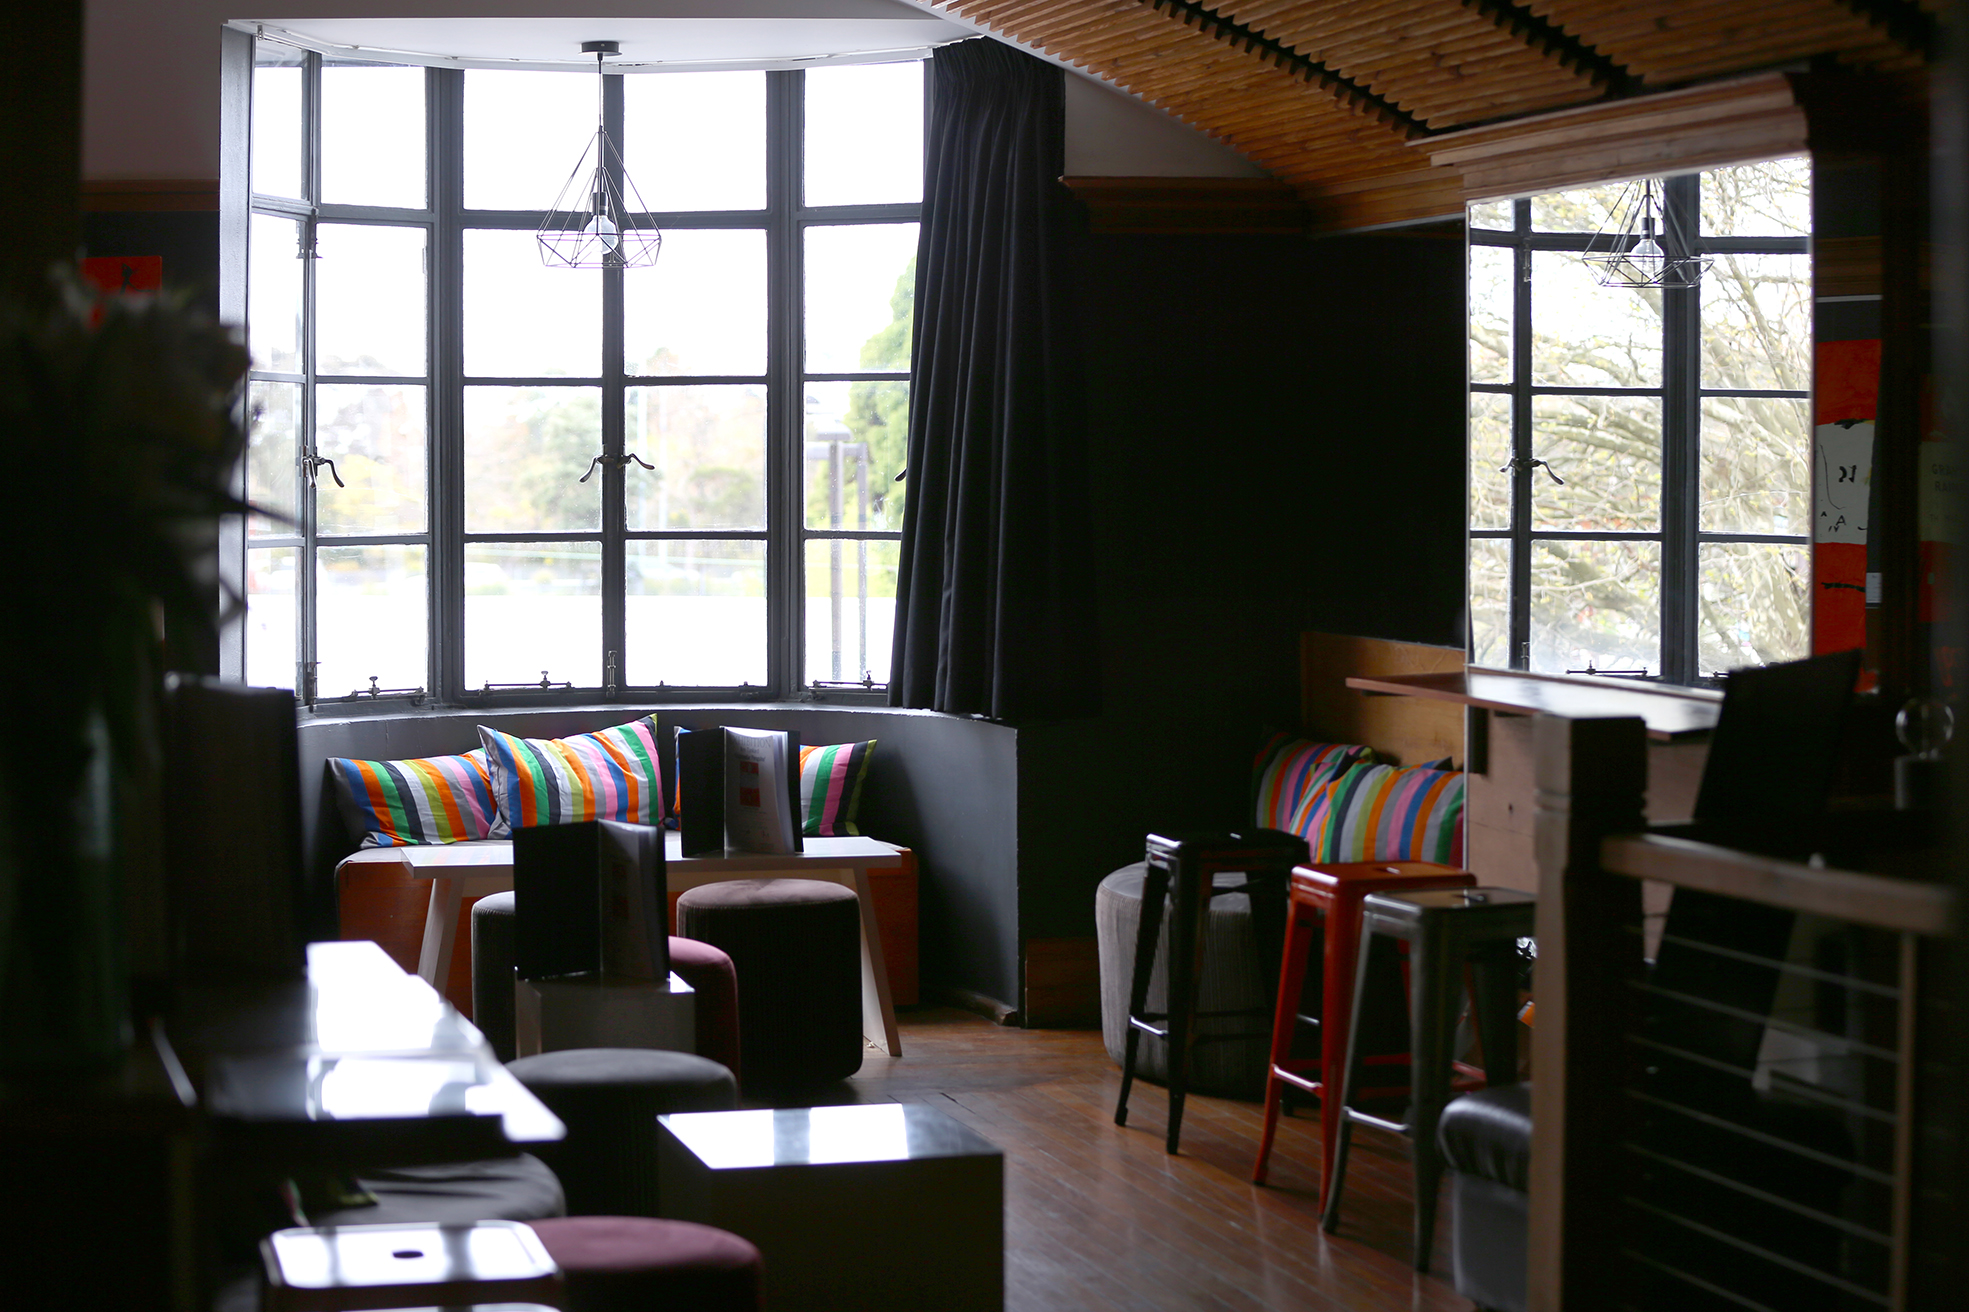 Upstairs at Palette Dining with huge windows overlooking the street below.